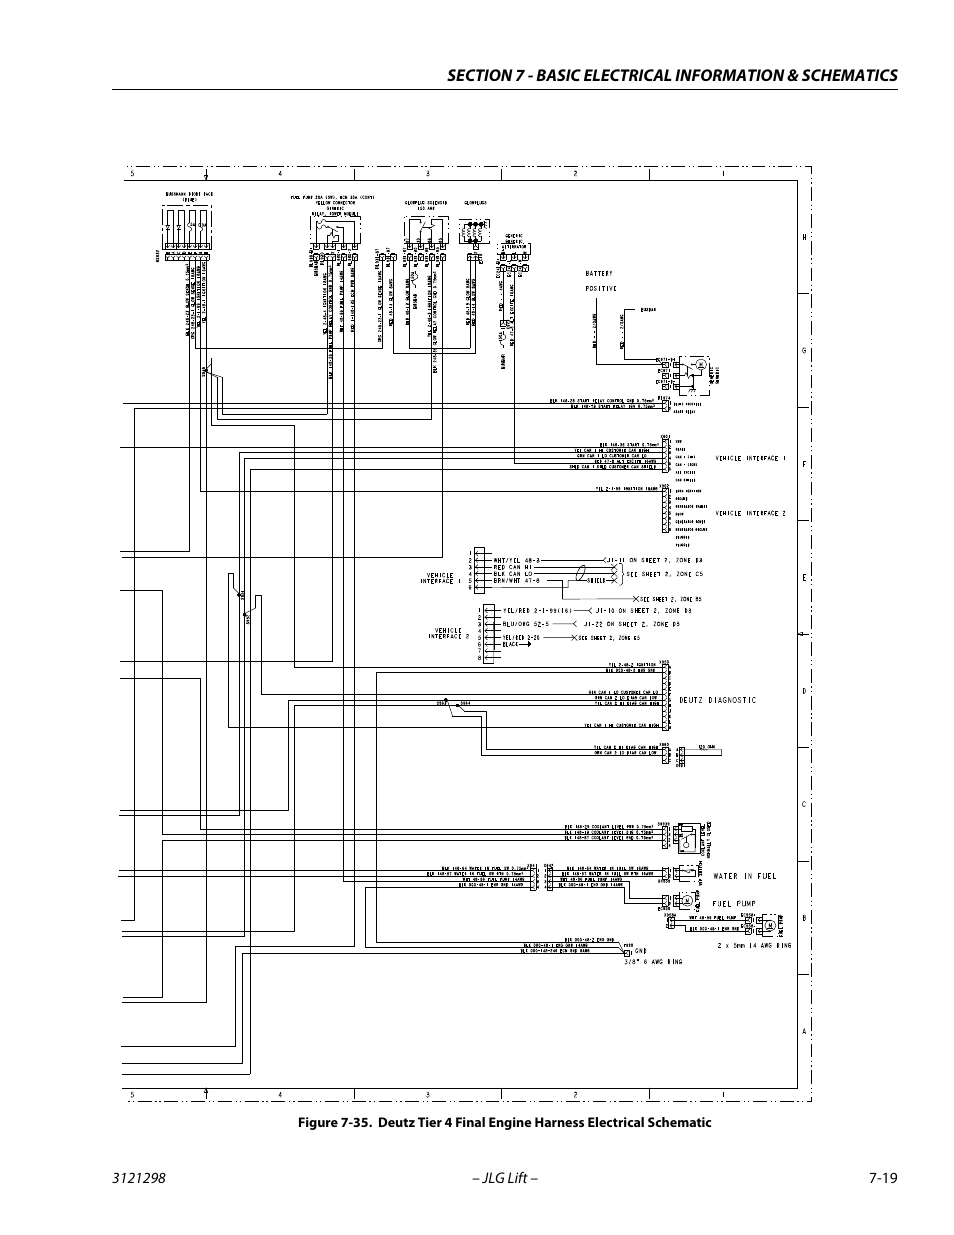 JLG 660SJ Service Manual User Manual | Page 319 / 328 | Also for: 600S  Service Manual